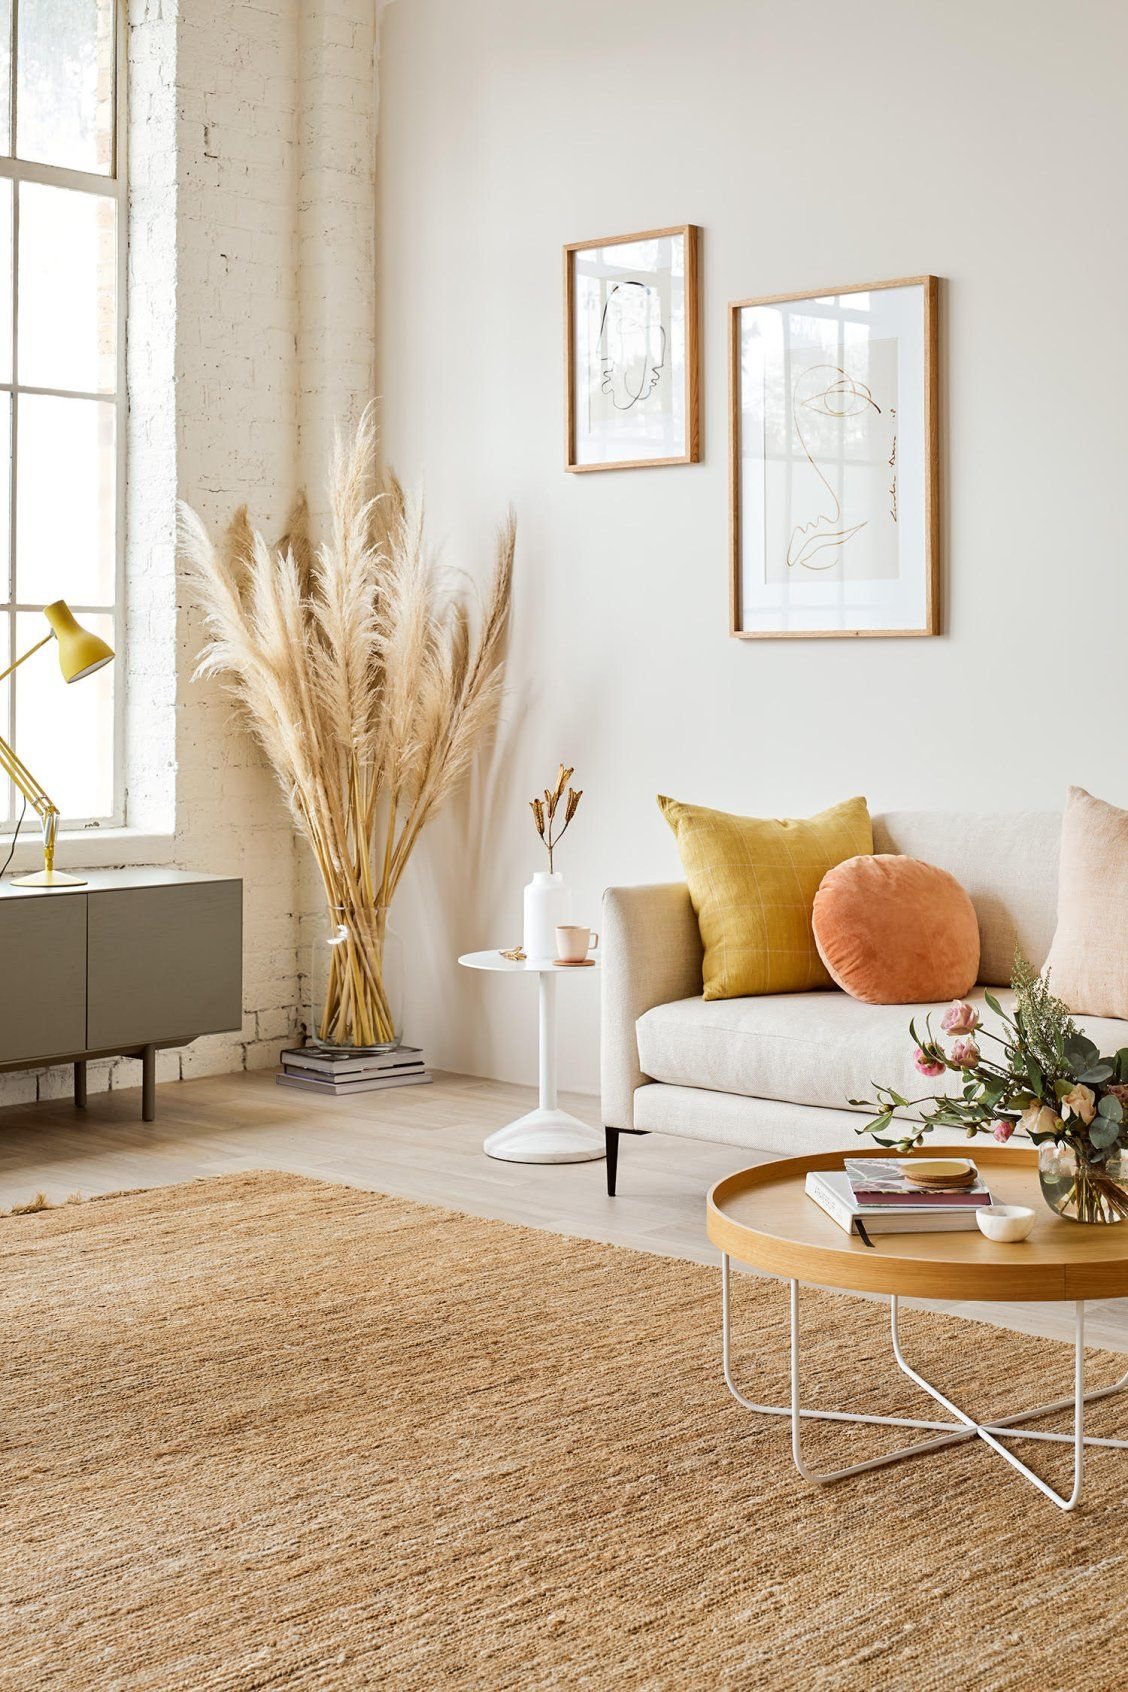 Neutral Scandi Style In This Pale And Minimalist Interior With Wild Grasses And Natural Rug Living Decor Living Room Designs Living Room Decor